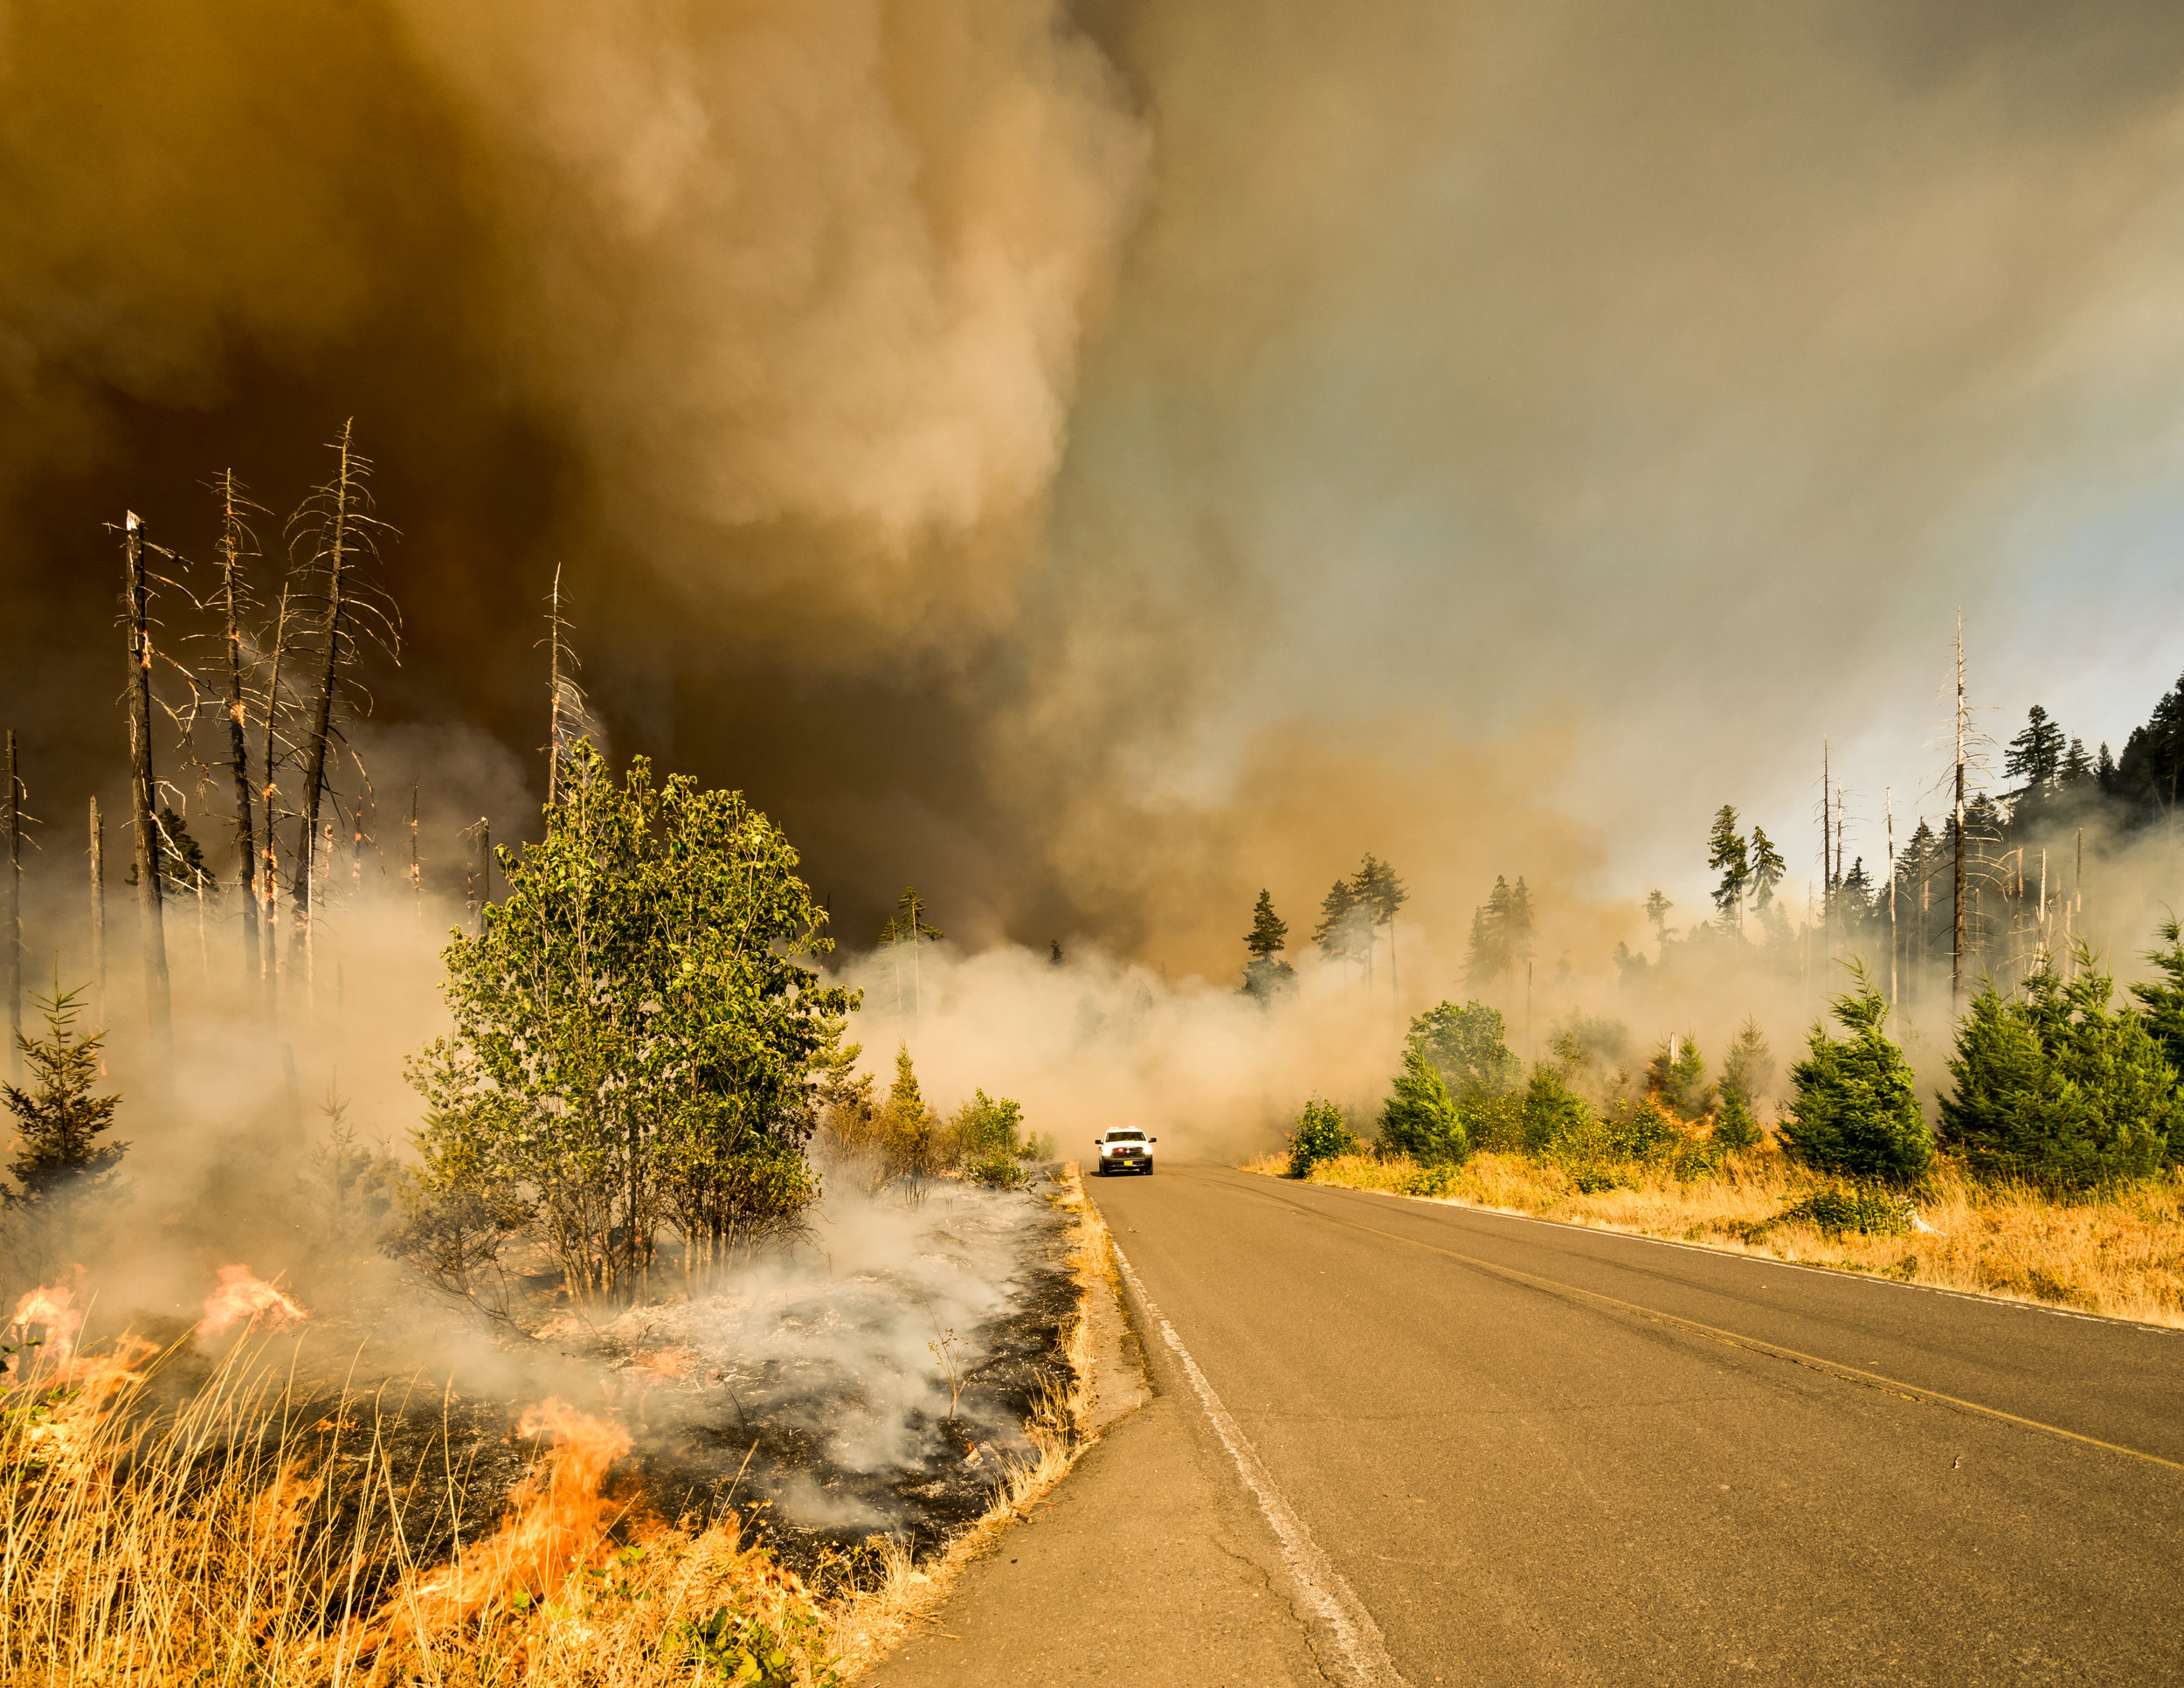 Deadly wildfires spread yearly in Arizona and across the southwest.